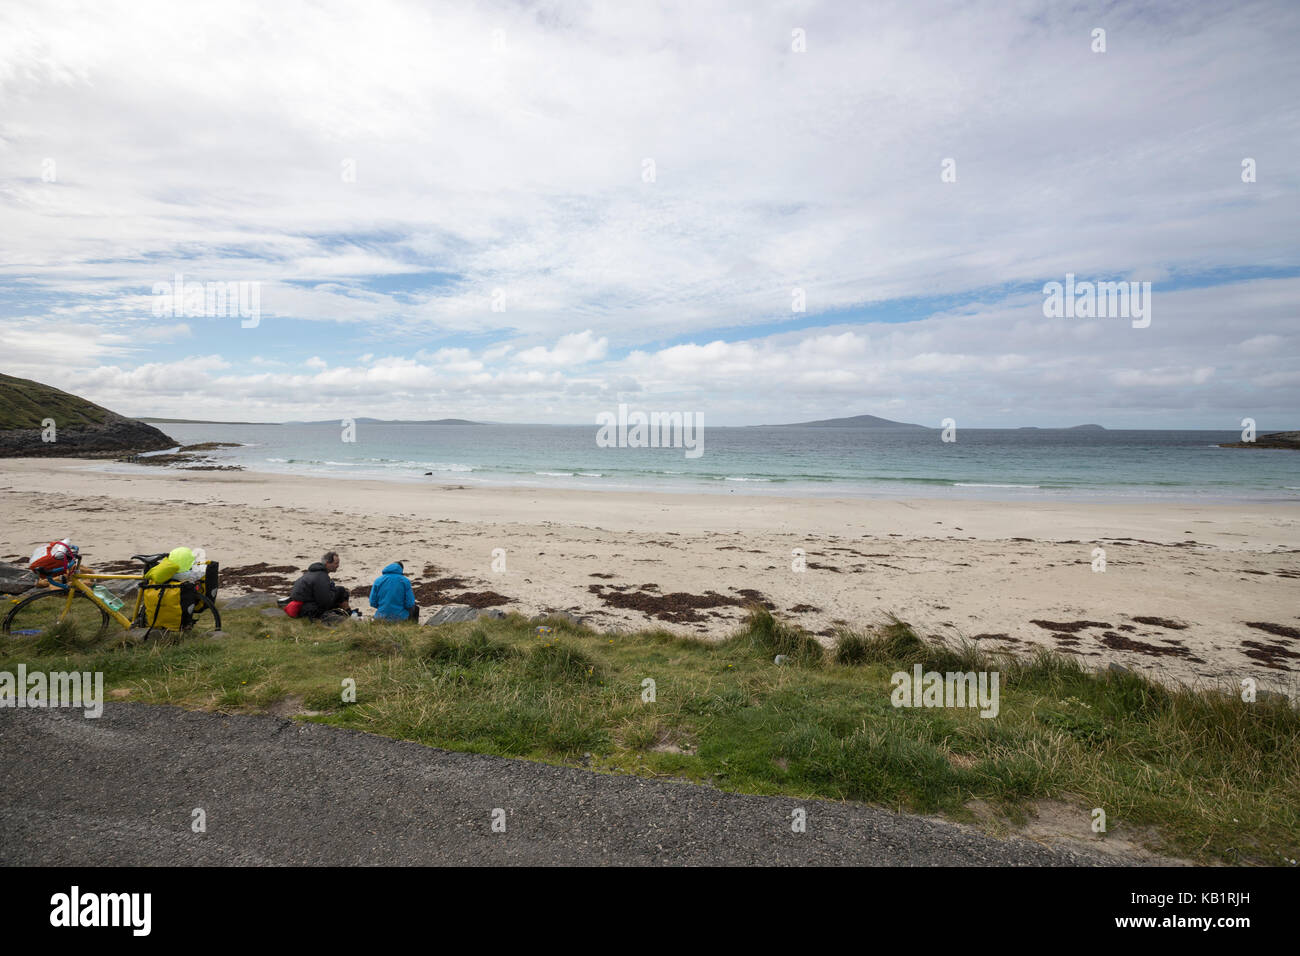 Two cyclist resting in front of a beach in Lewis and Harris island, Outer Hebrides, Scotland Stock Photo